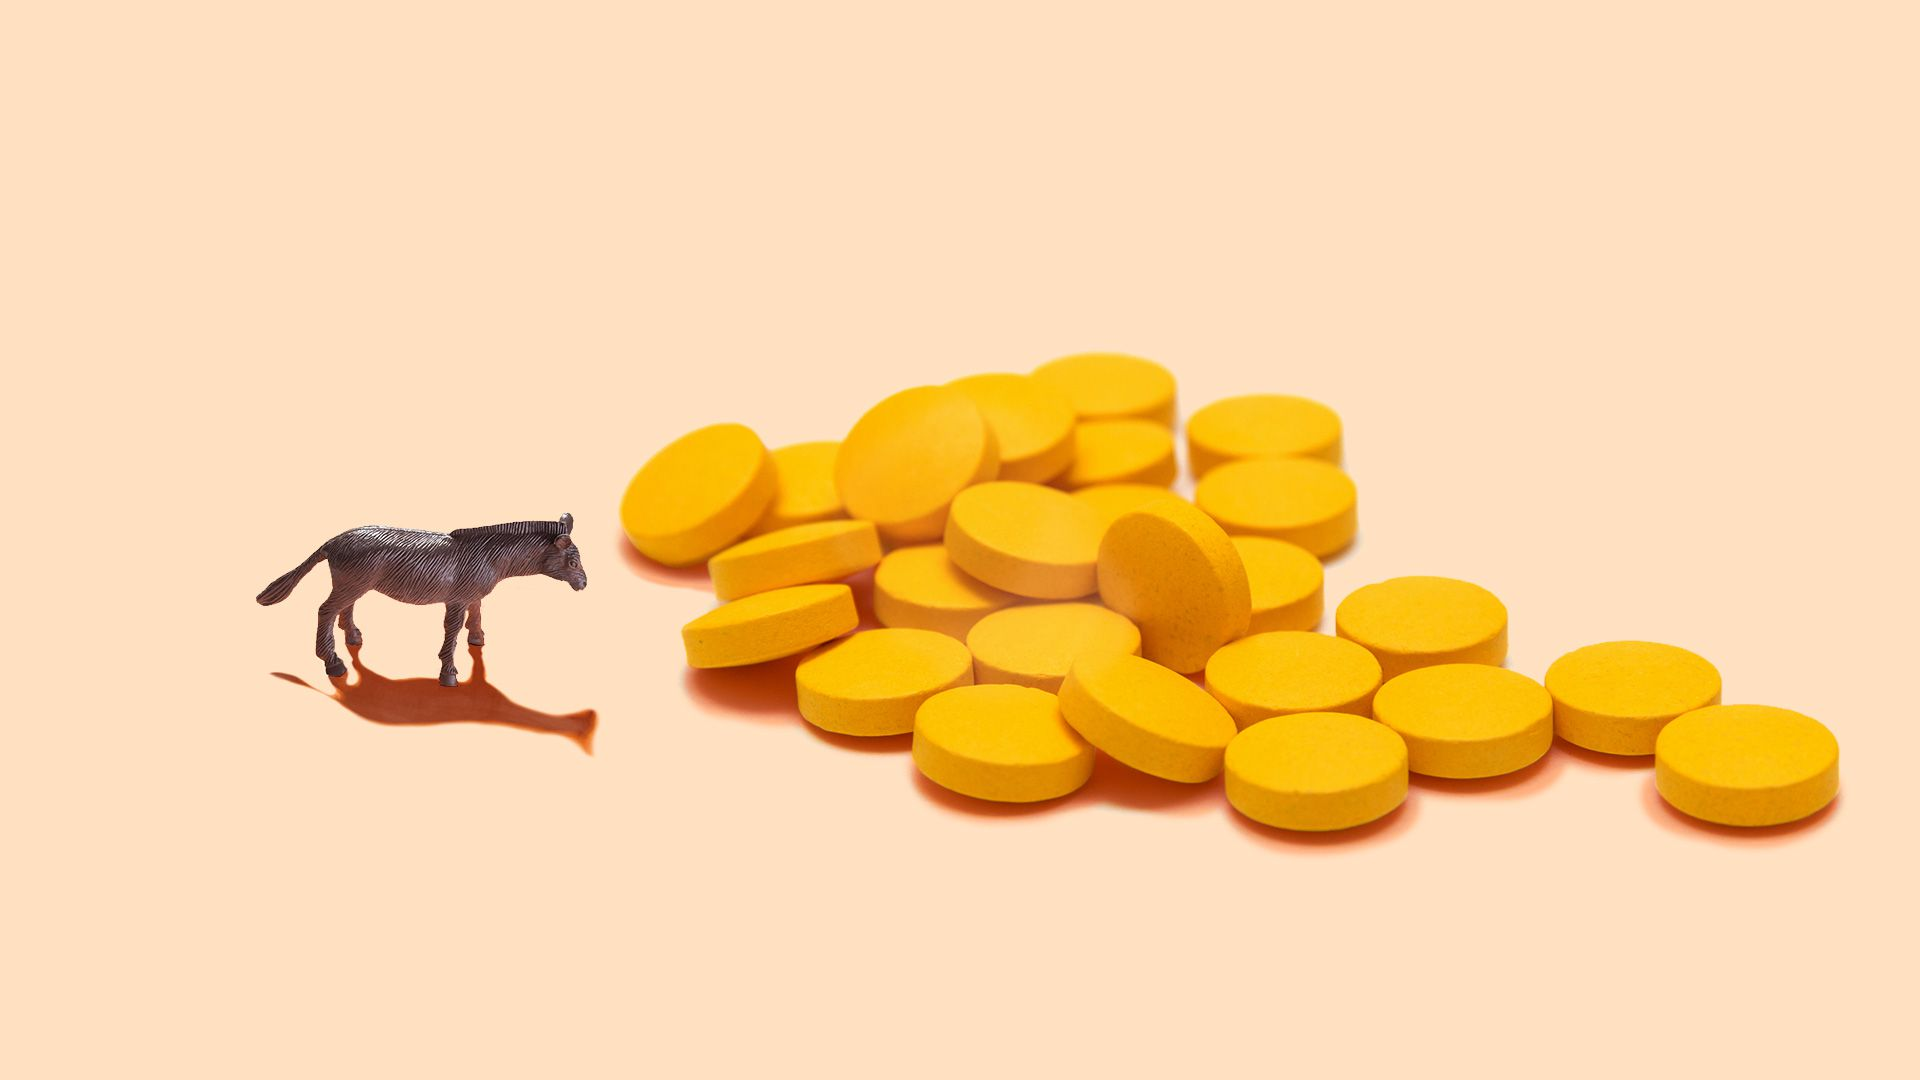 Illustration of a miniature toy donkey next to a large pile of pills